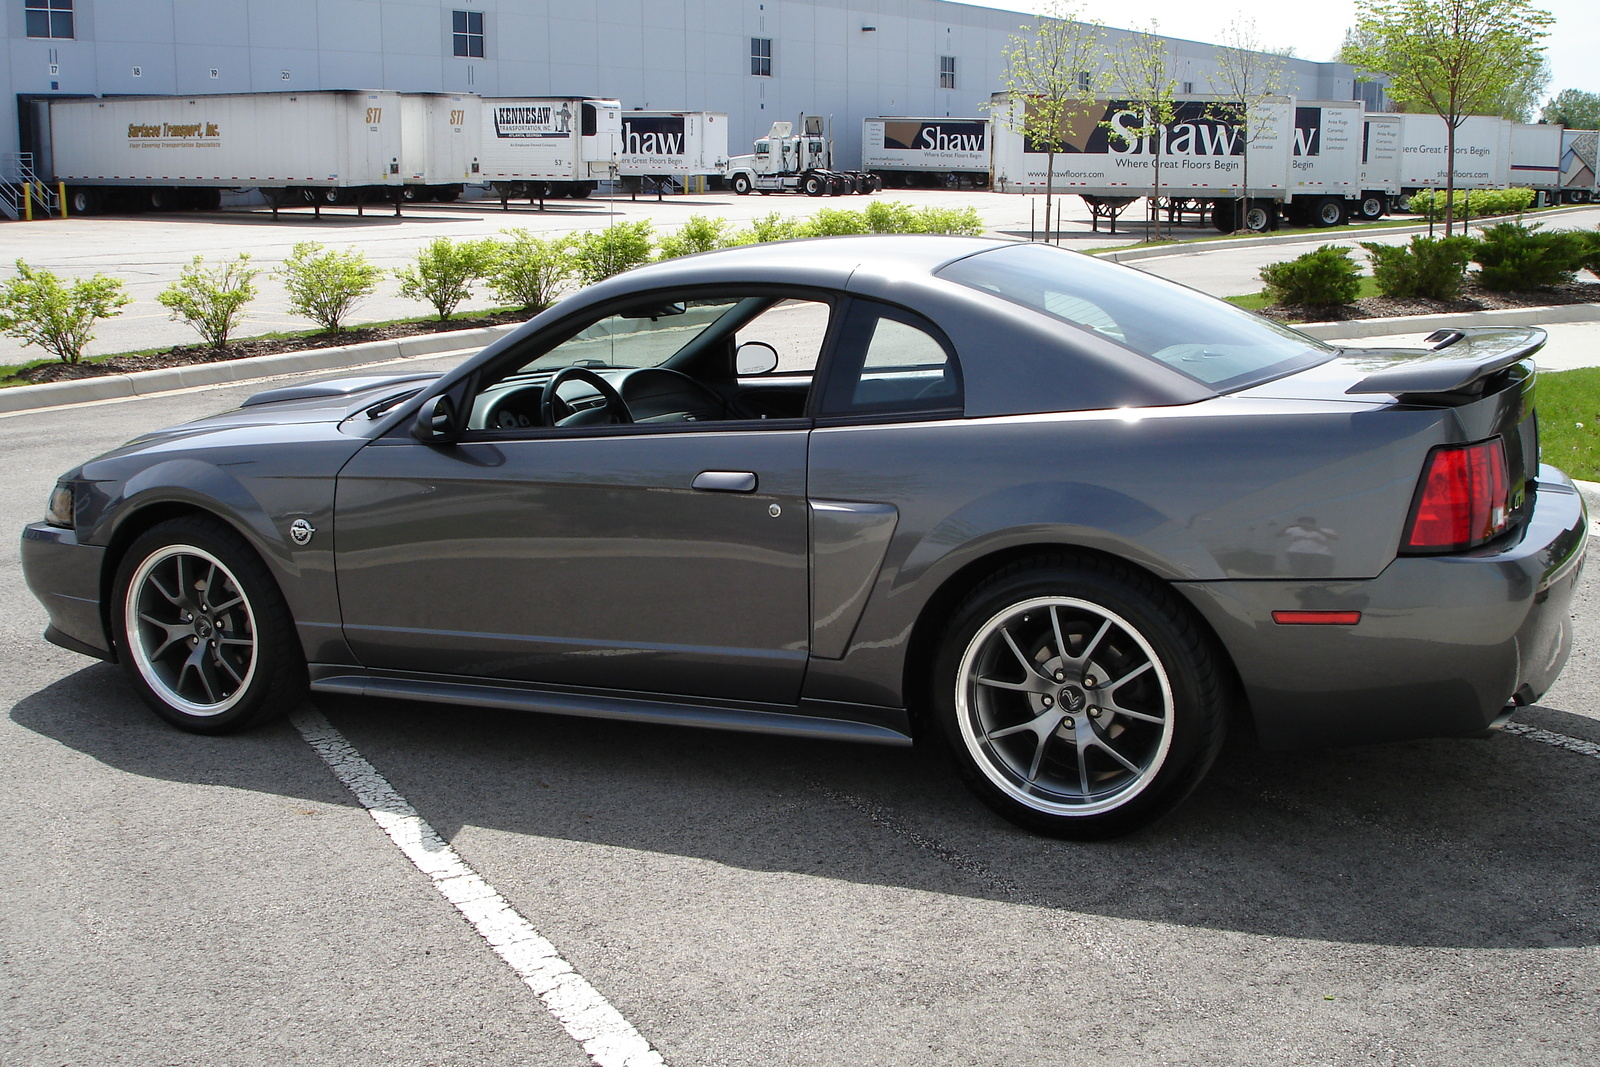 Picture of 2004 ford mustang gt deluxe exterior